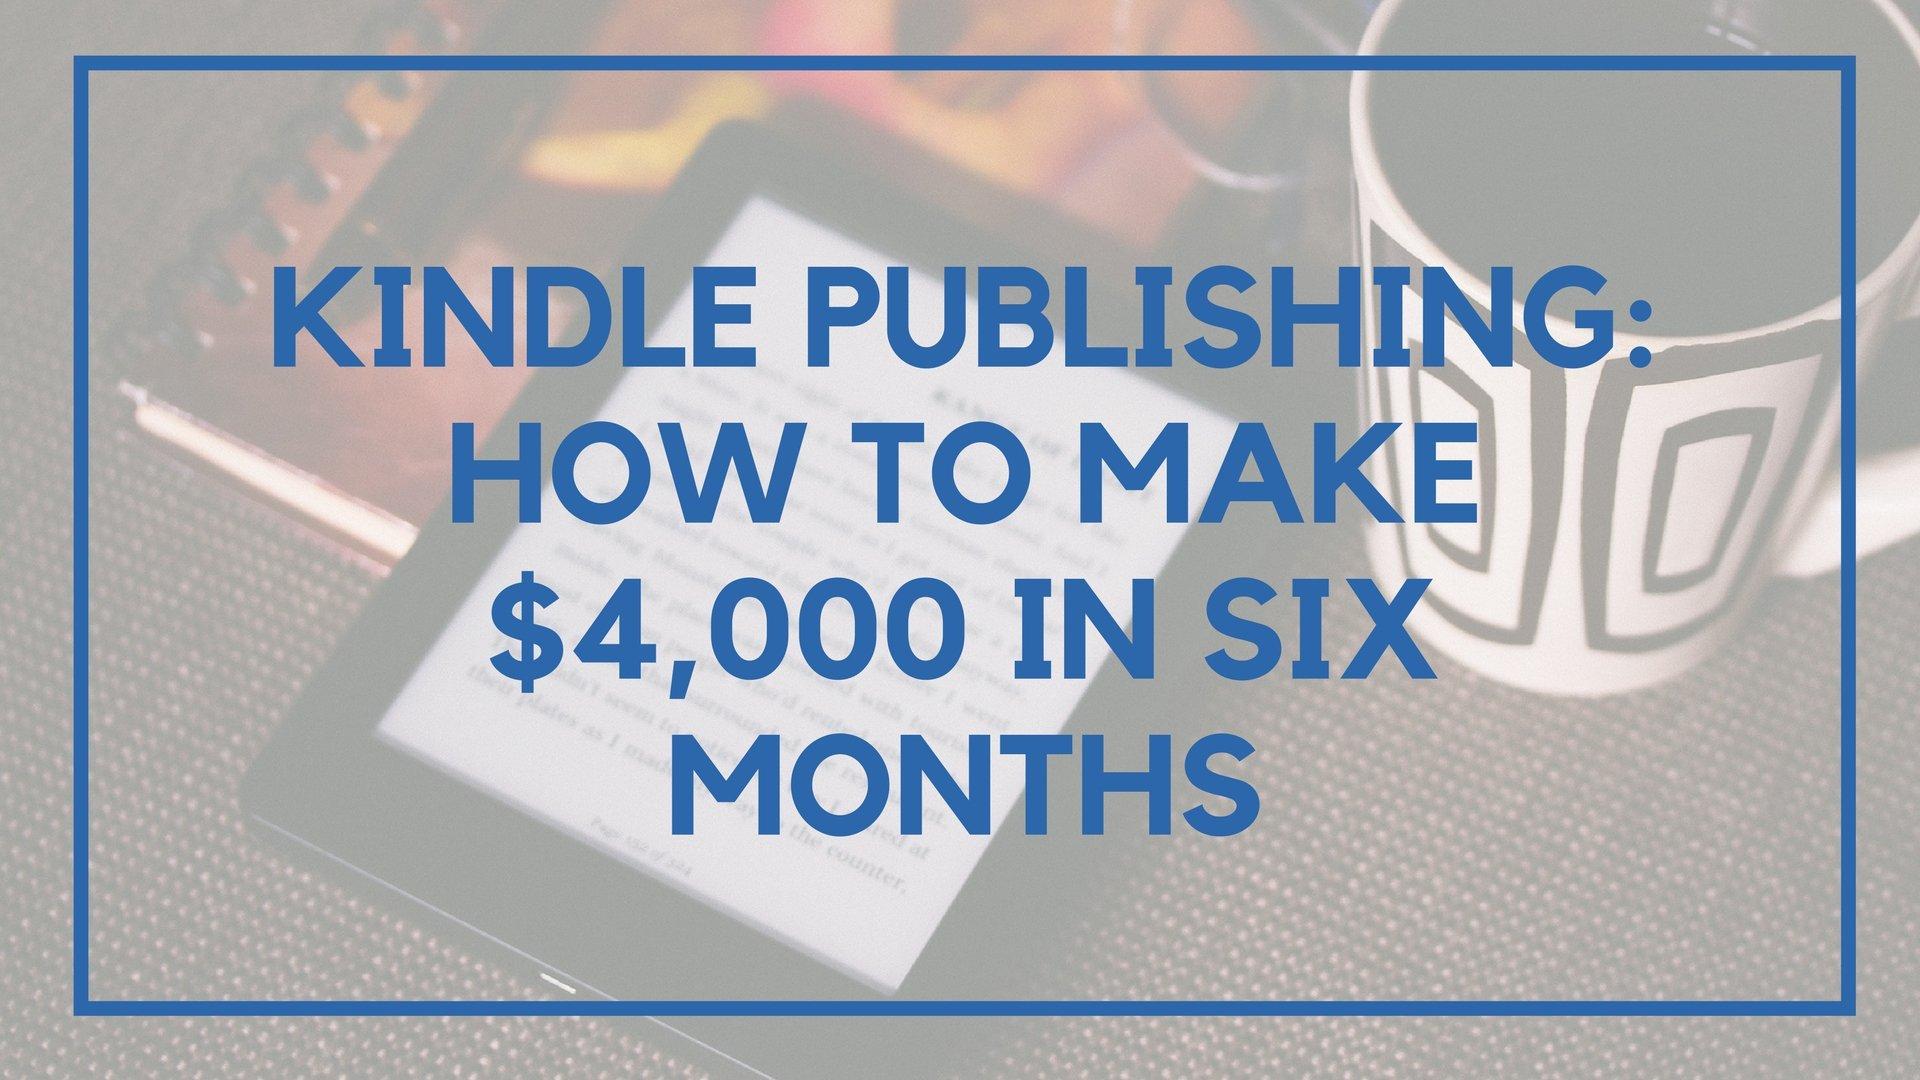 Kindle Publishing: How to Make $4,000 in Six Months